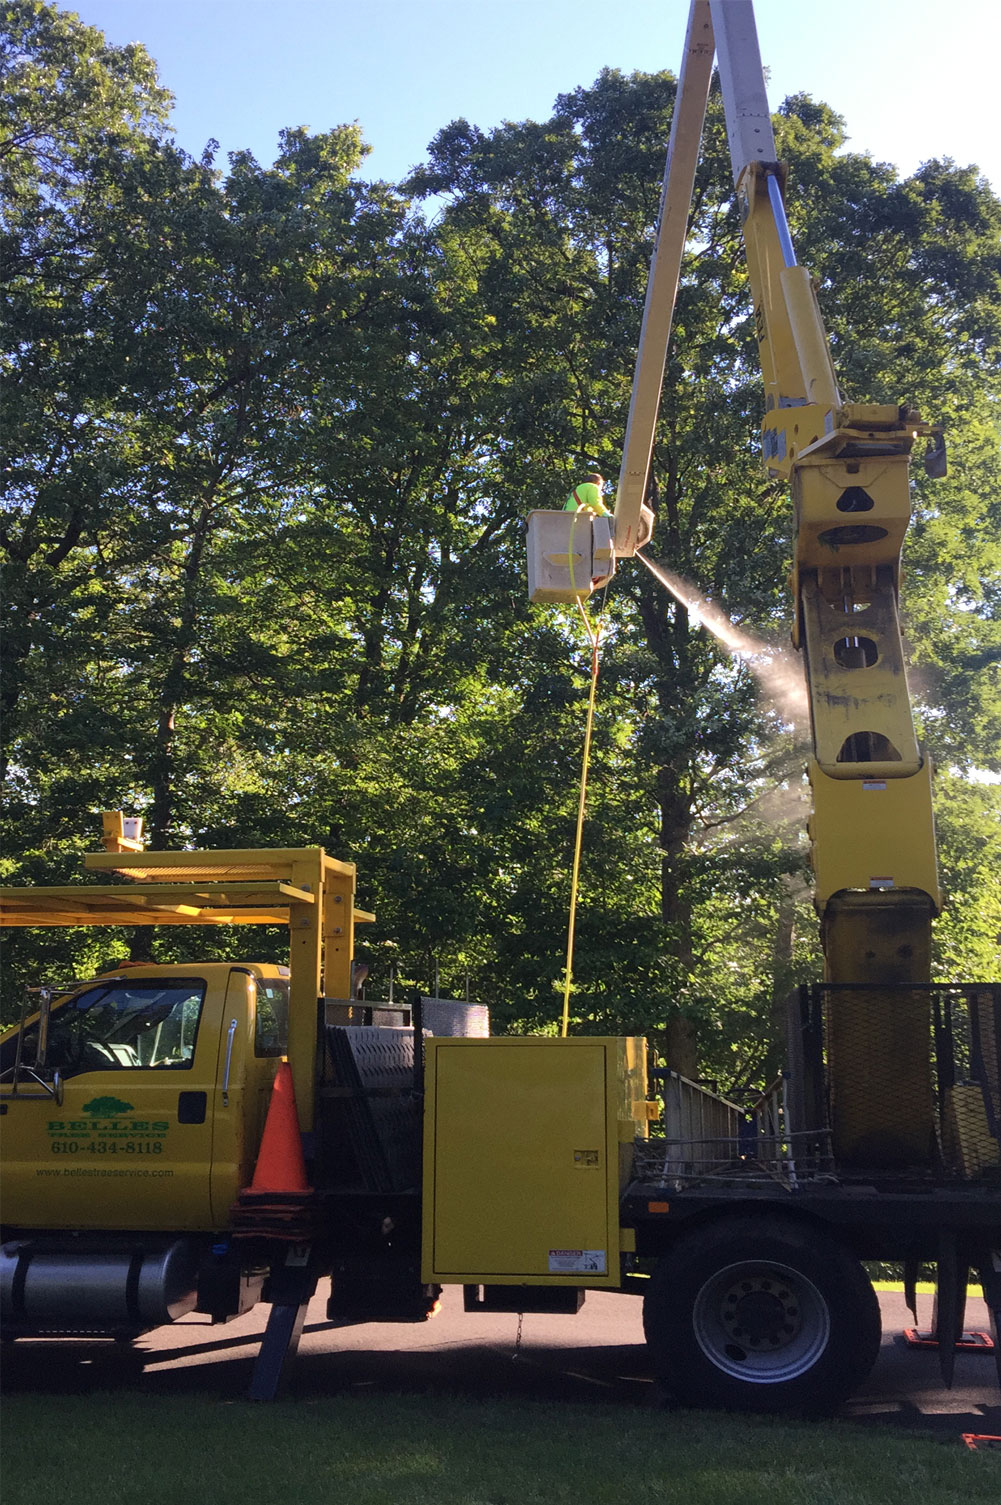 tree-spraying-pest-control-services-lehigh-valley-pa